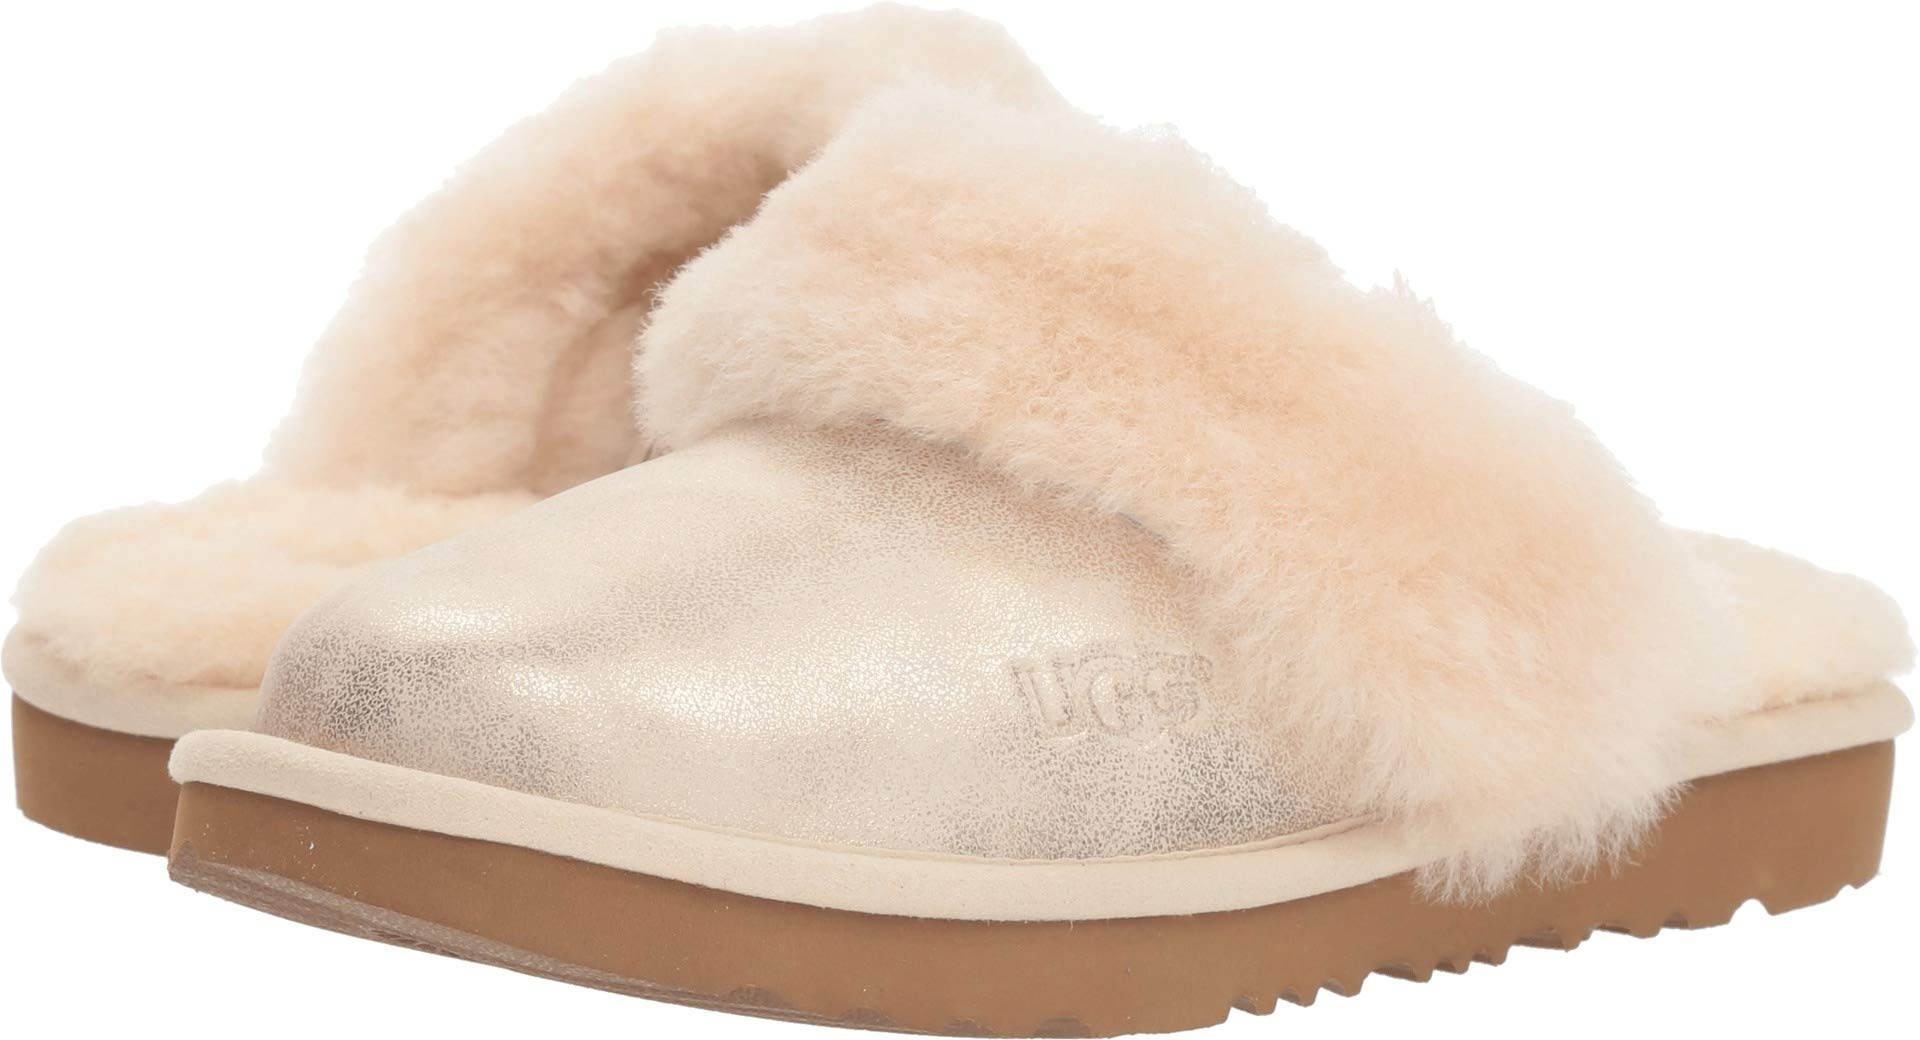 UGG Girls' K Cozy II Metallic Slipper, gold, 10 M US Toddler by UGG